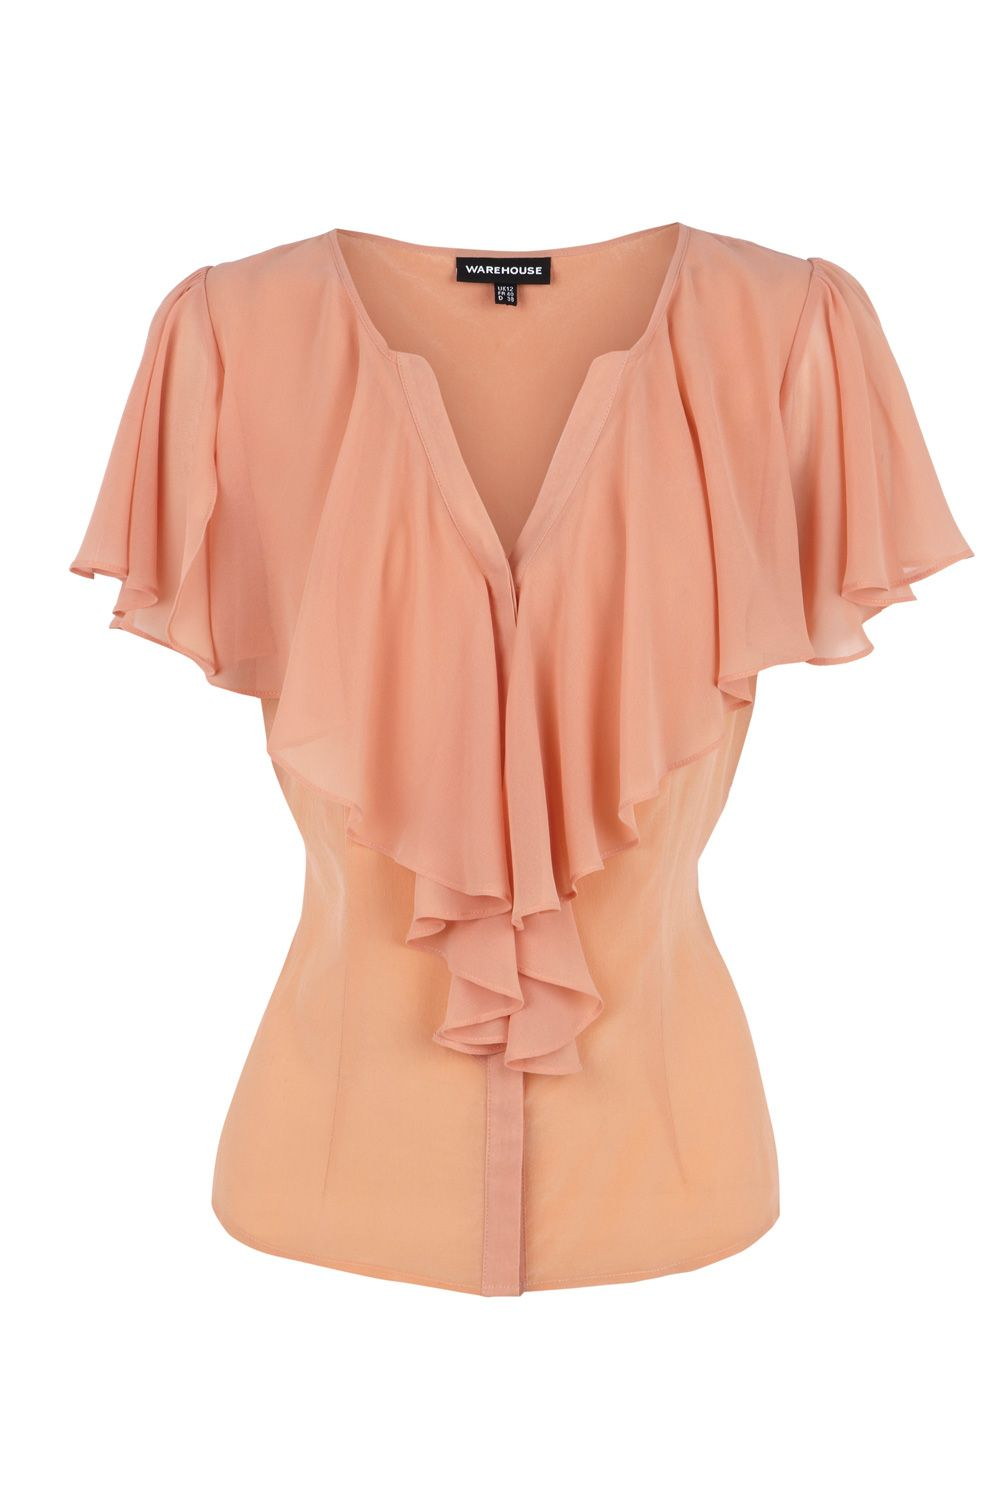 Warehouse Womens Warehouse Cape detail clean blouse, product image